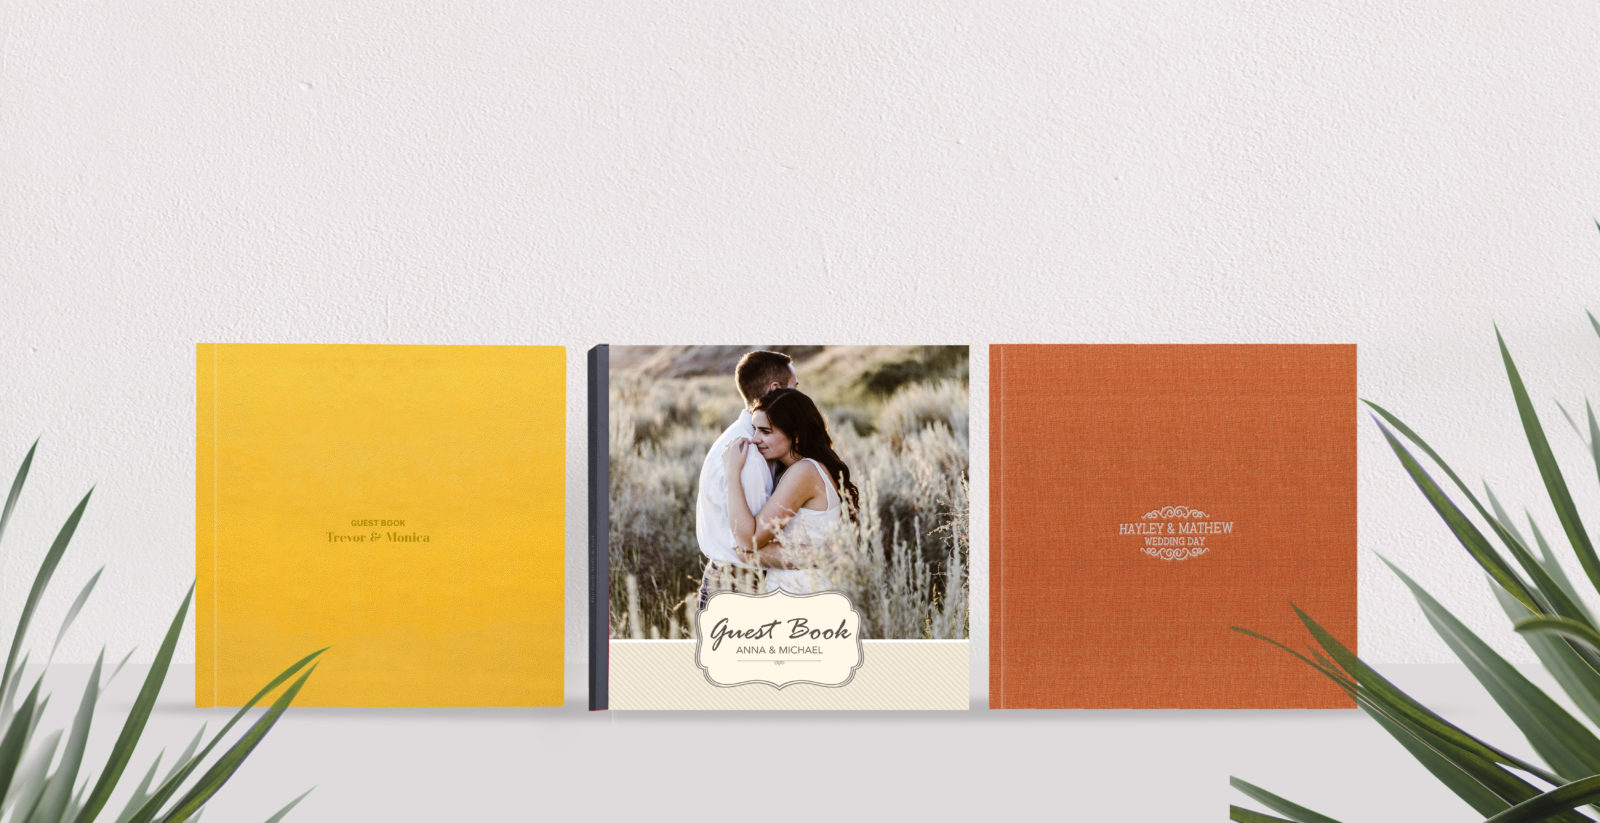 6 Steps For Creating a Personalised Wedding Guest Book